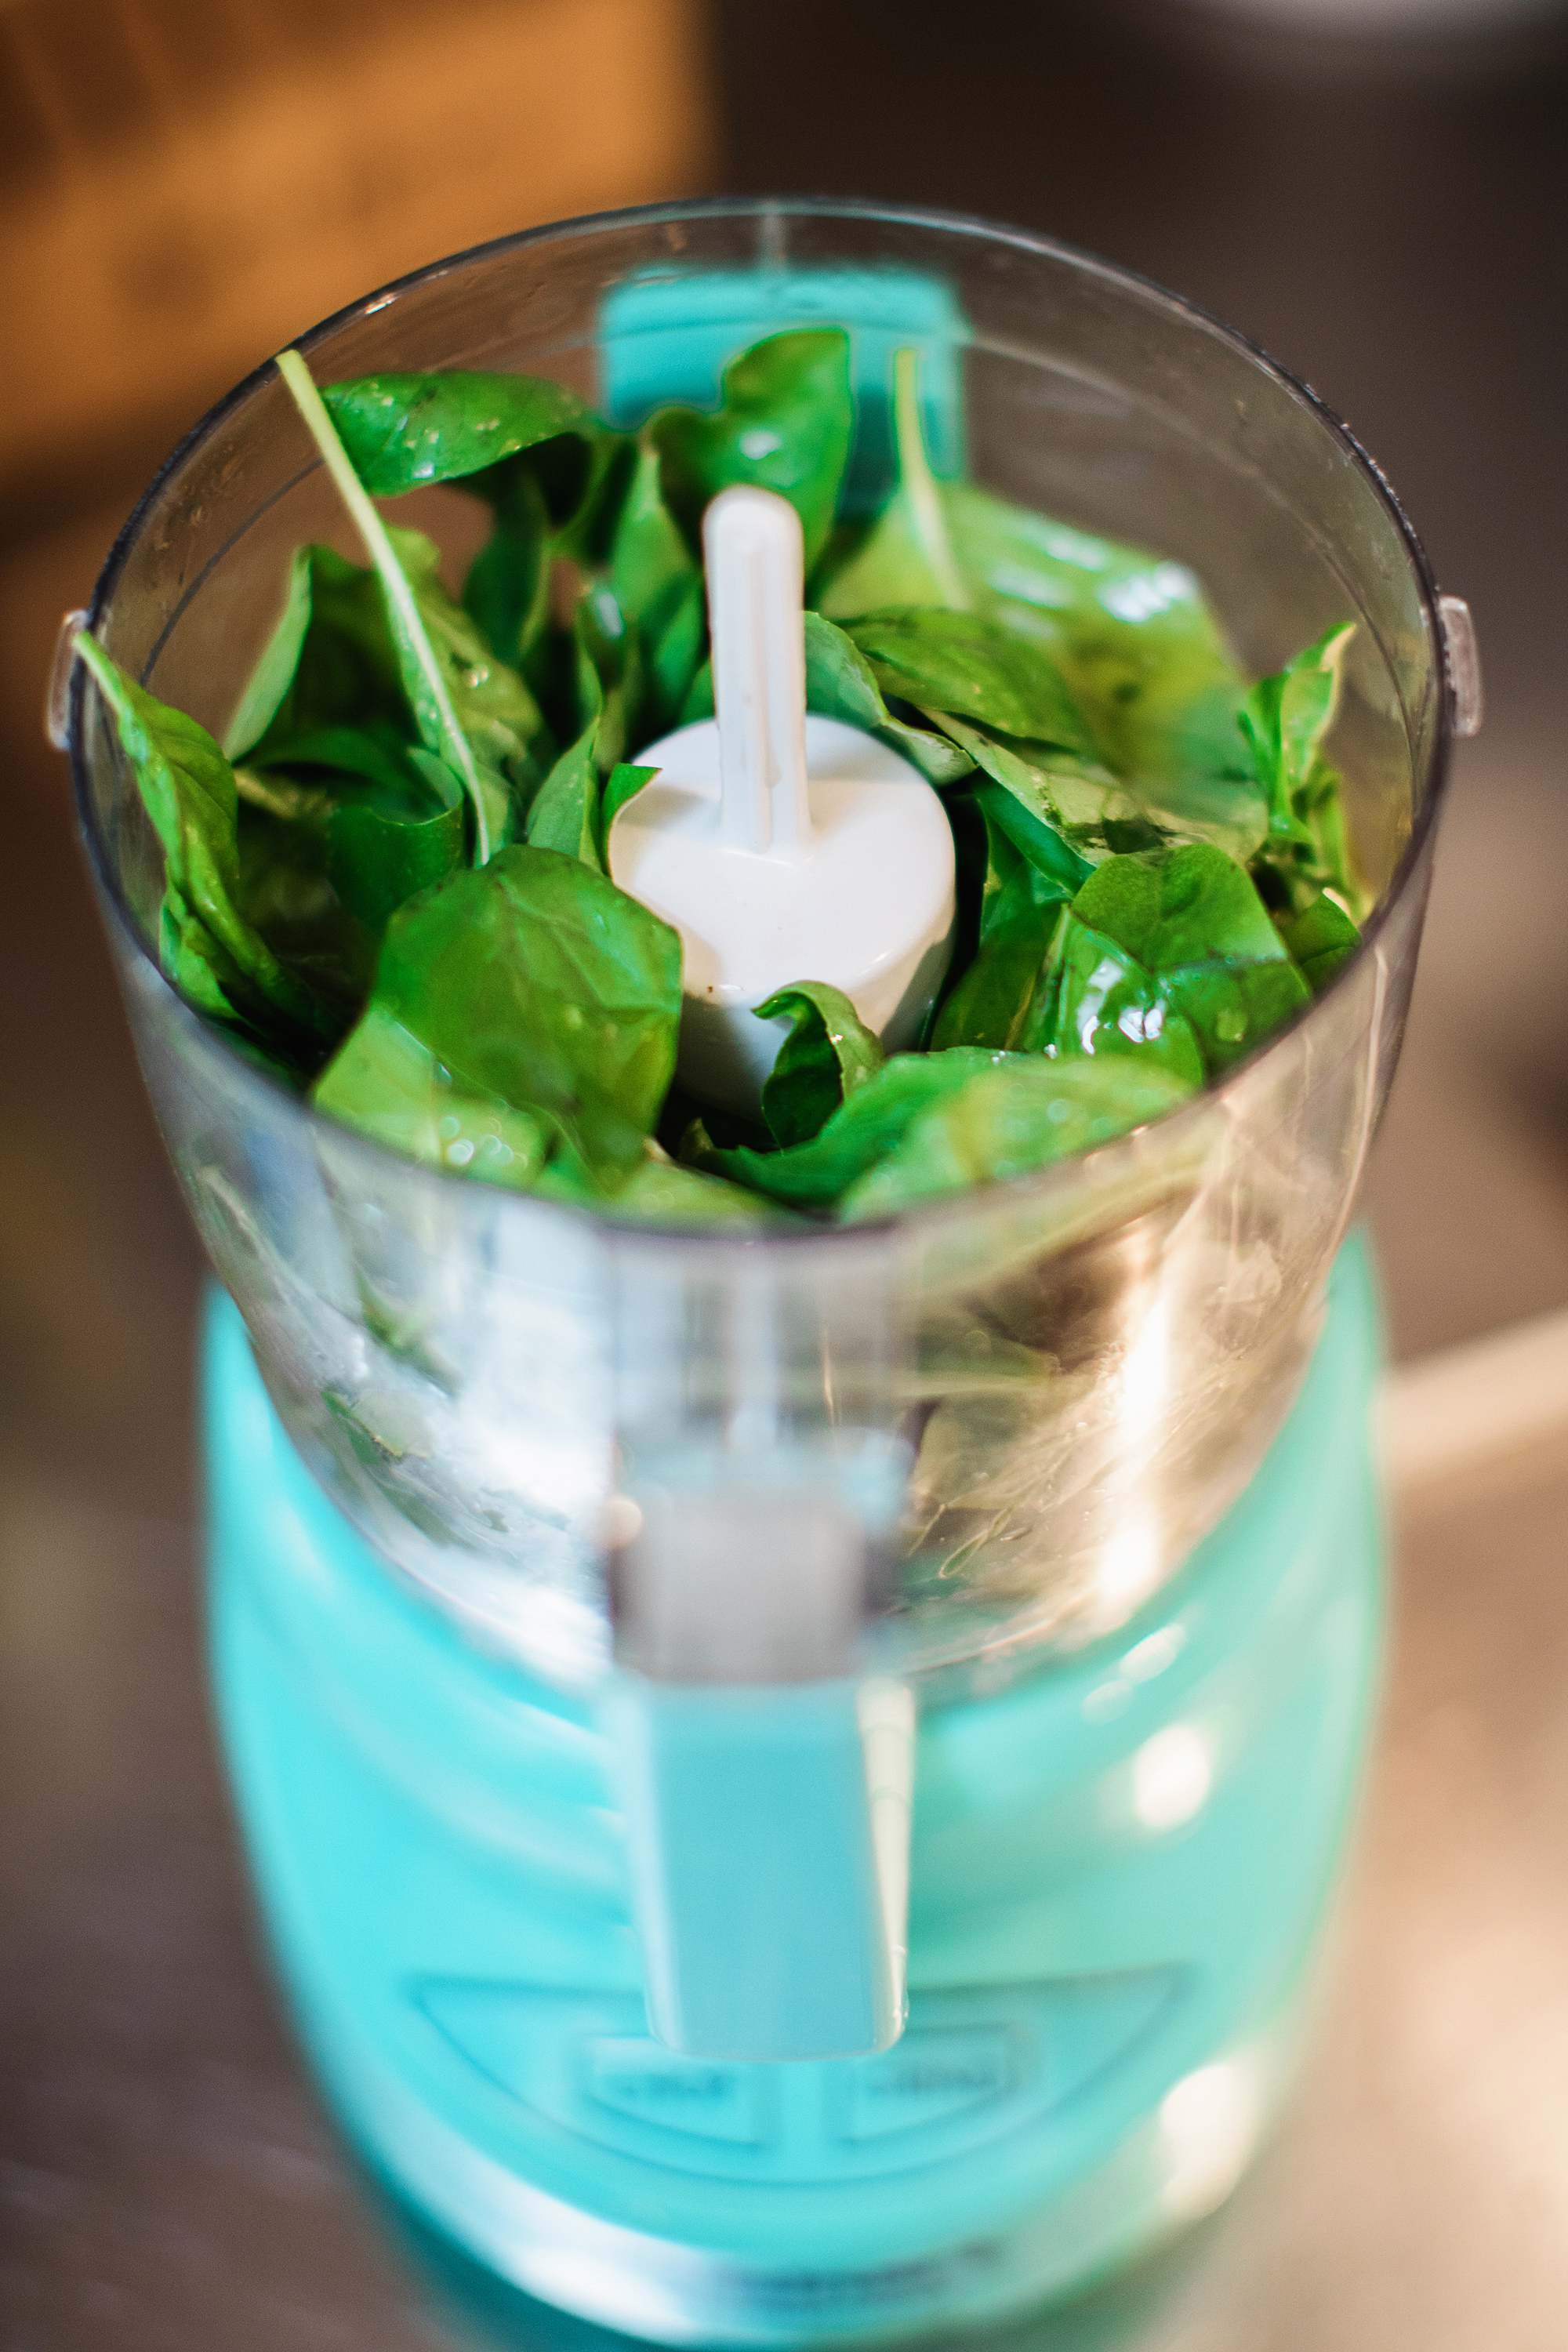 blend herbs in food processor to freeze herbs